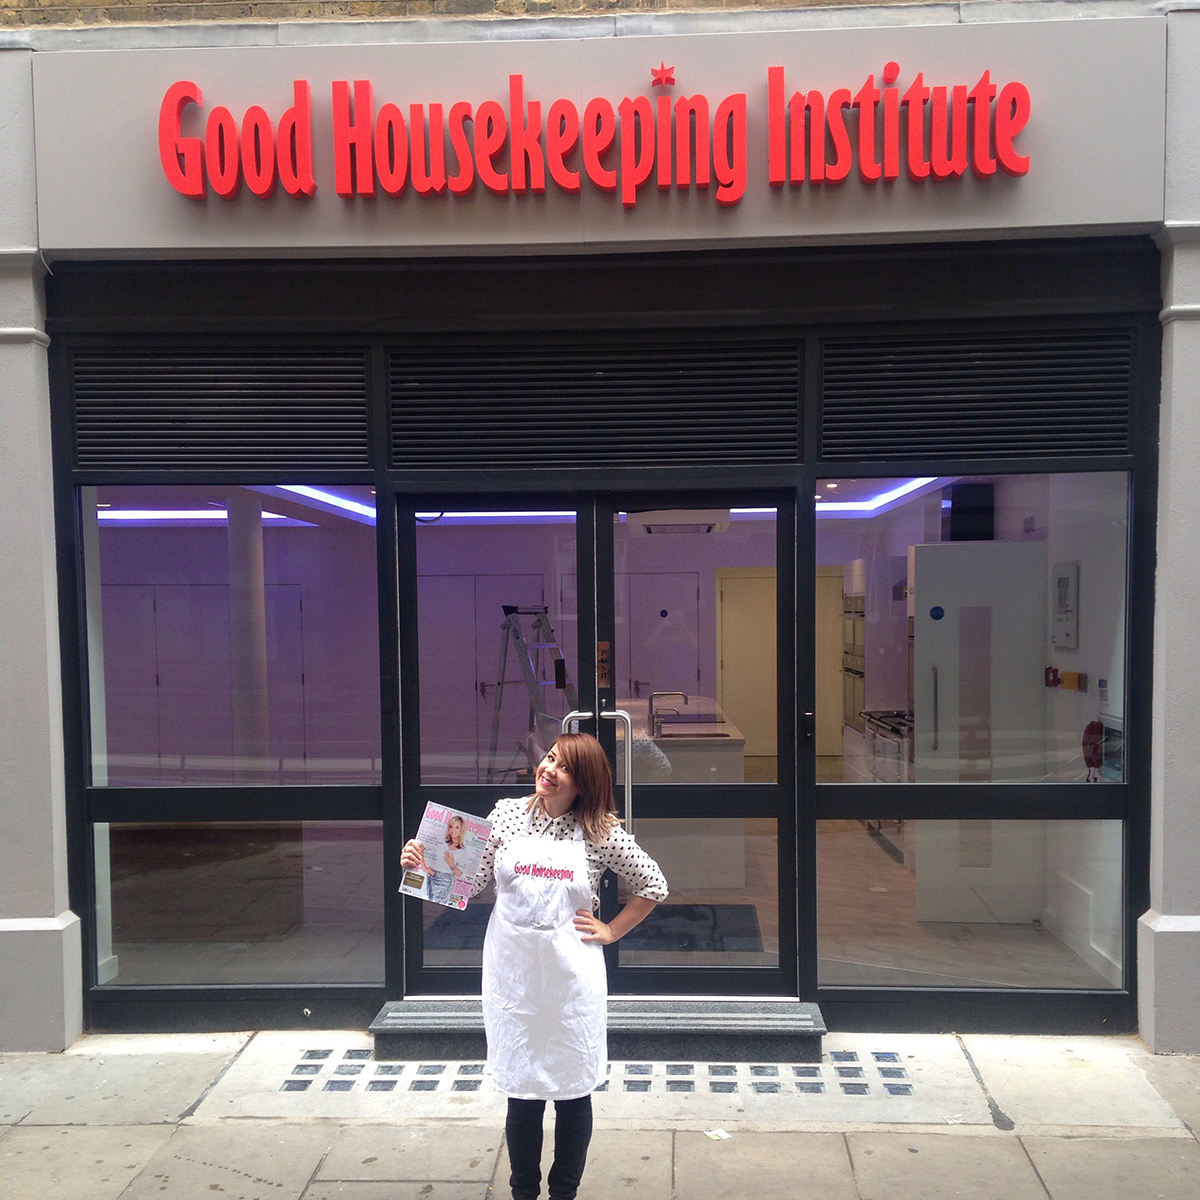 Good Housekeeping: What It's Like To Work At The GHI